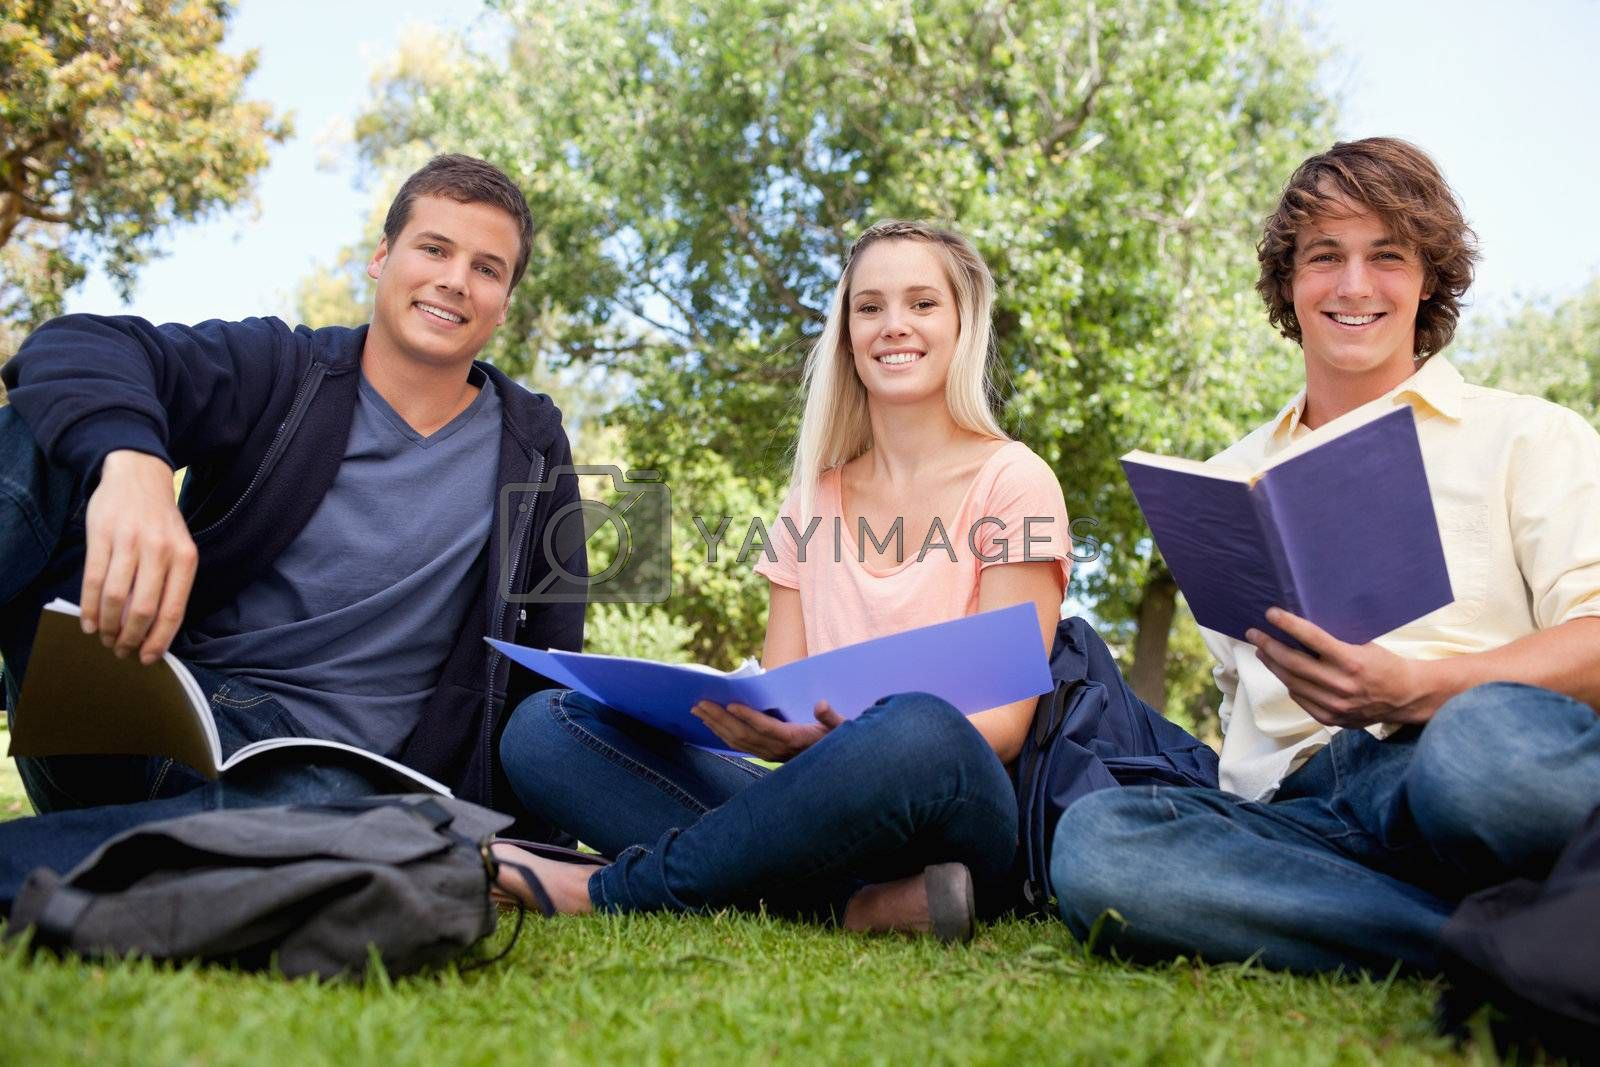 Low angle-shot of three smiling students working